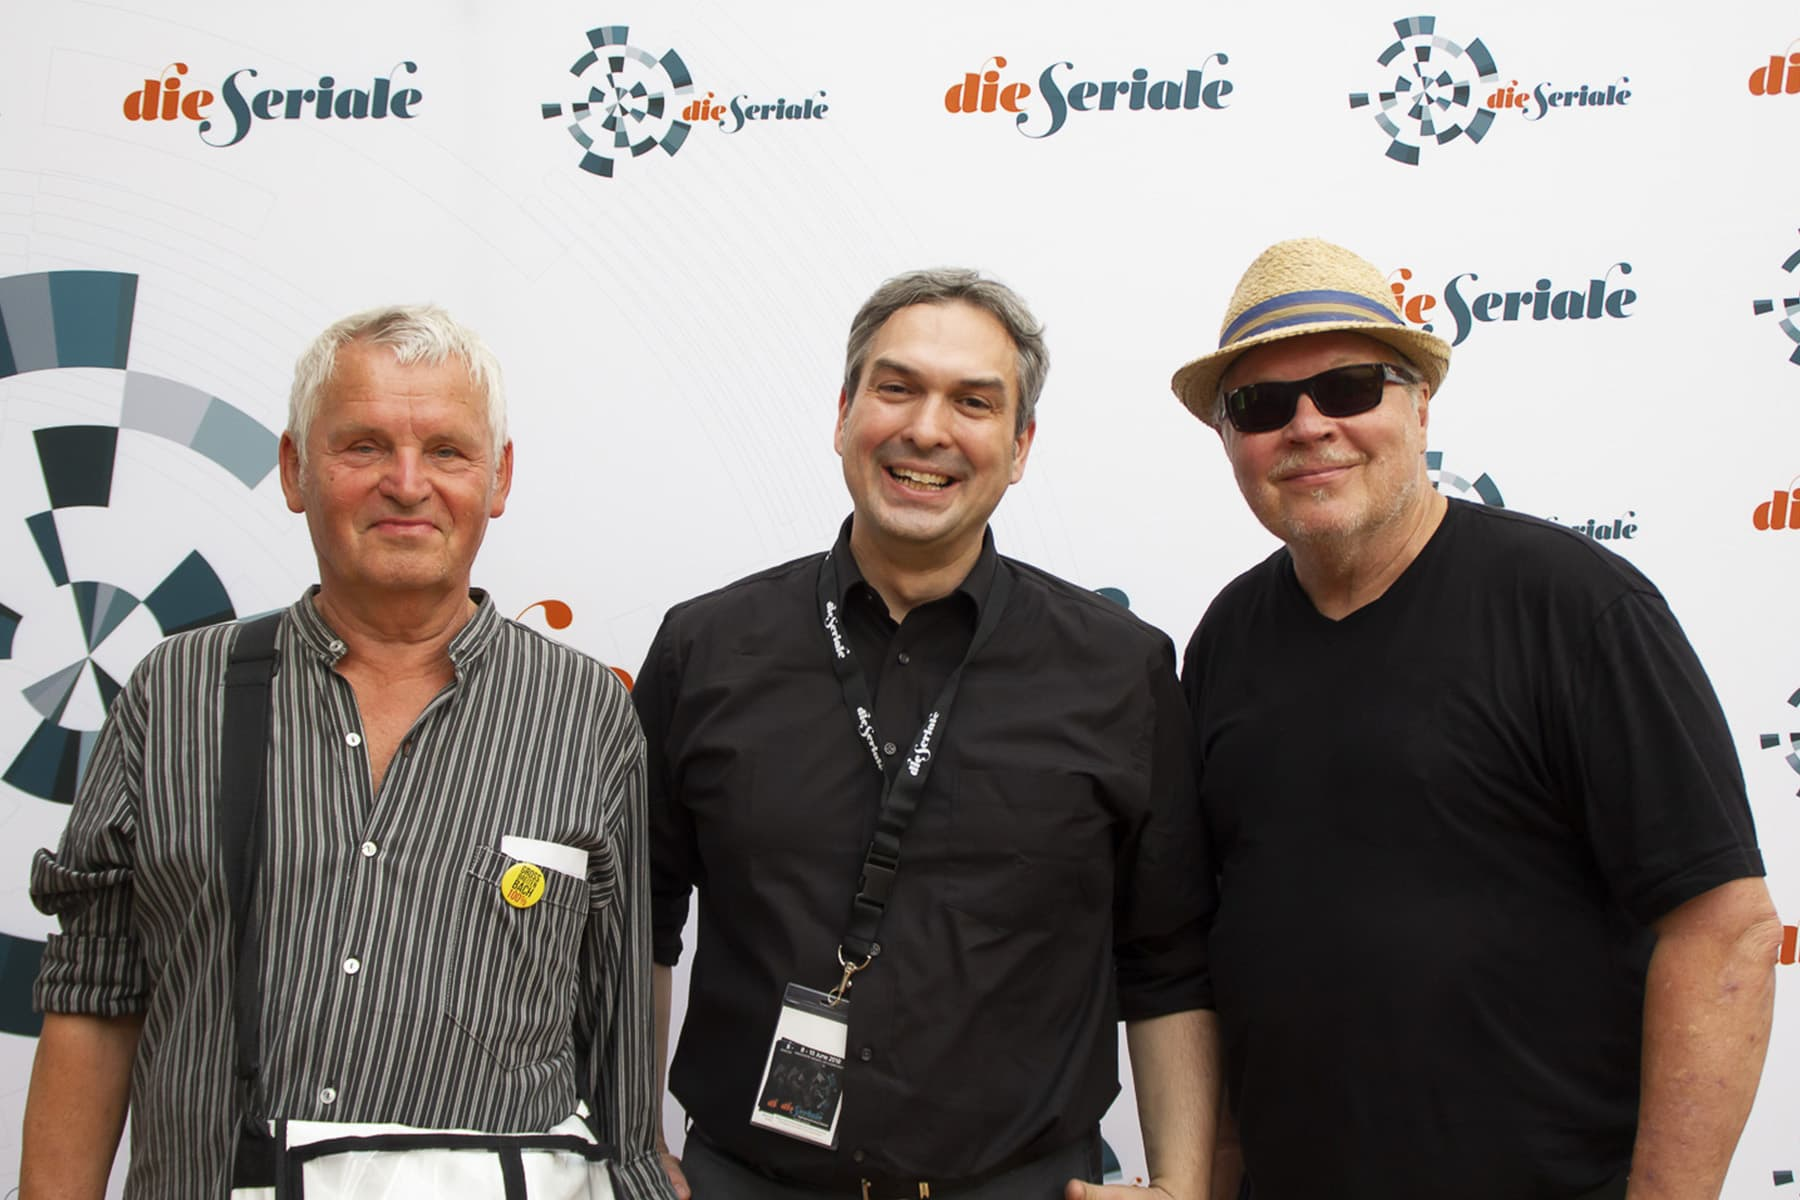 """BEST DOCUMENTARY - Gerd Conradt, creator and director of """"Grossbreitenbach100%"""", winner of the Best Documentary at Die Seriale Csongor Dobrotka, """"die Seriale"""" festival director and Charly Weller"""